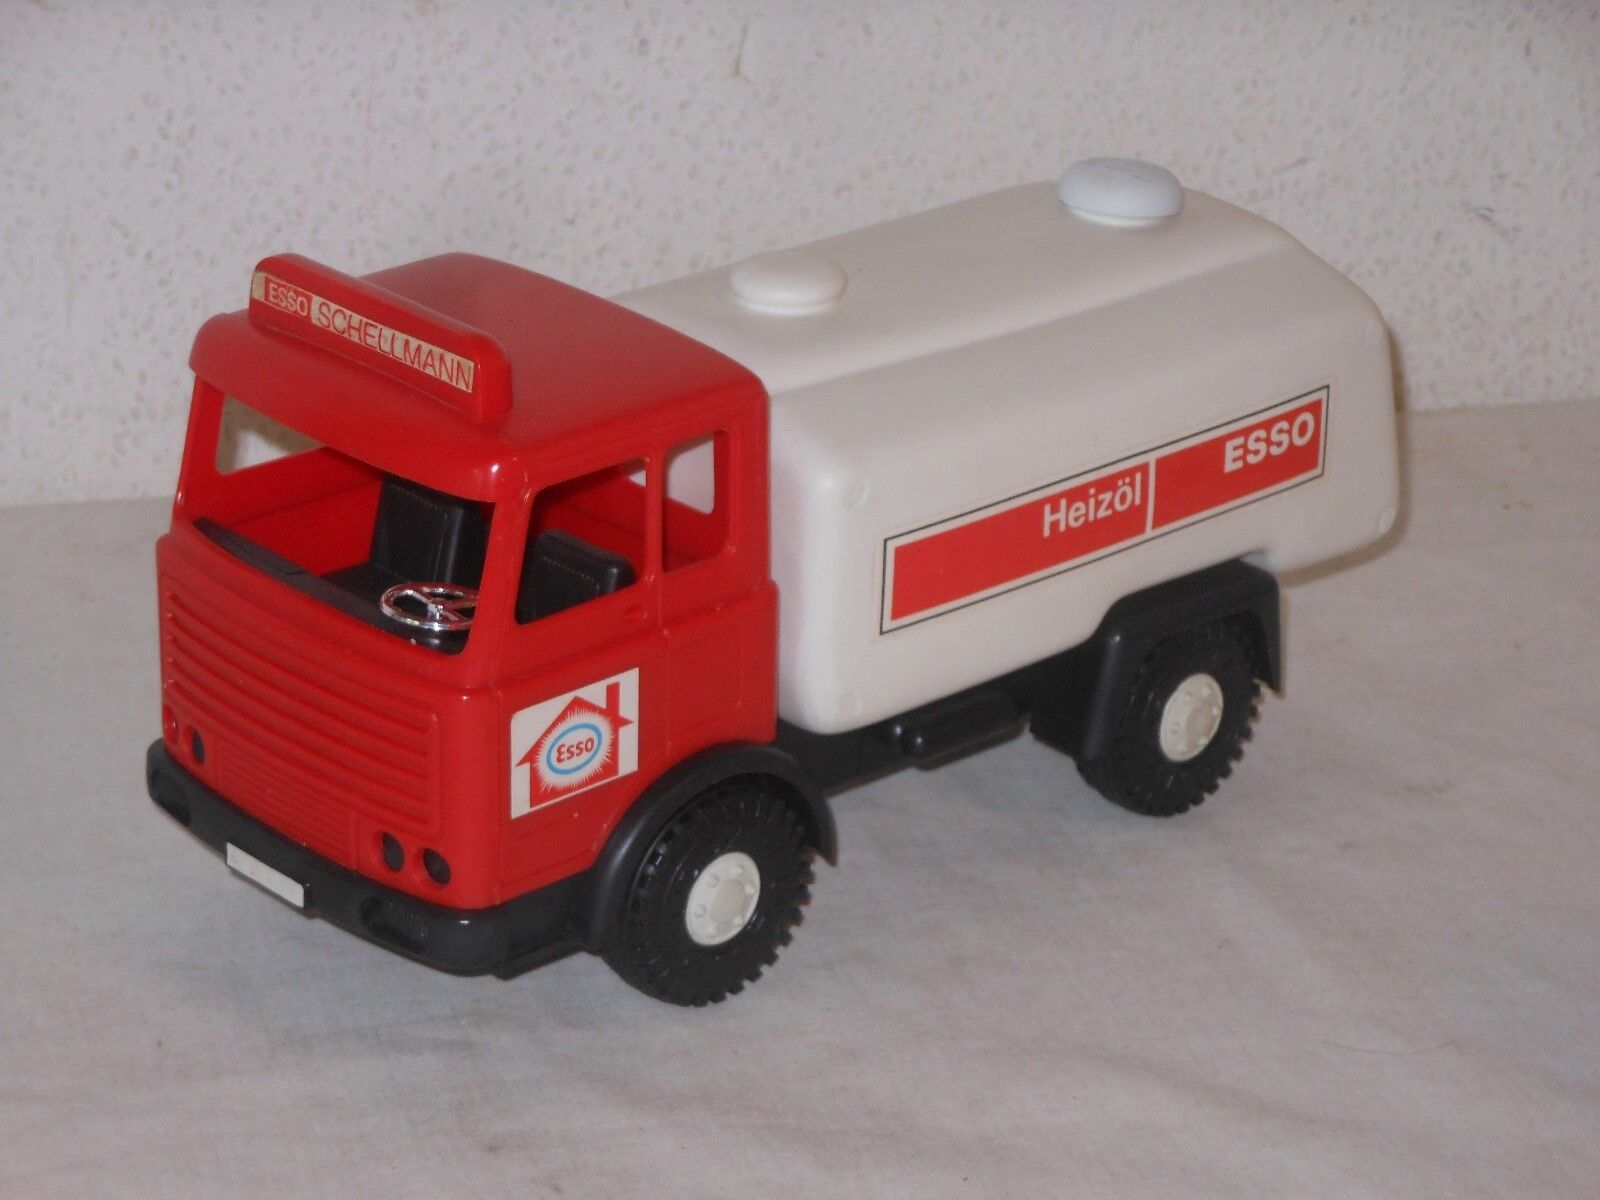 Scania - ESSO RED TANKER CAR - 28 cm - Vintage Toy - From Wader - West Germany -